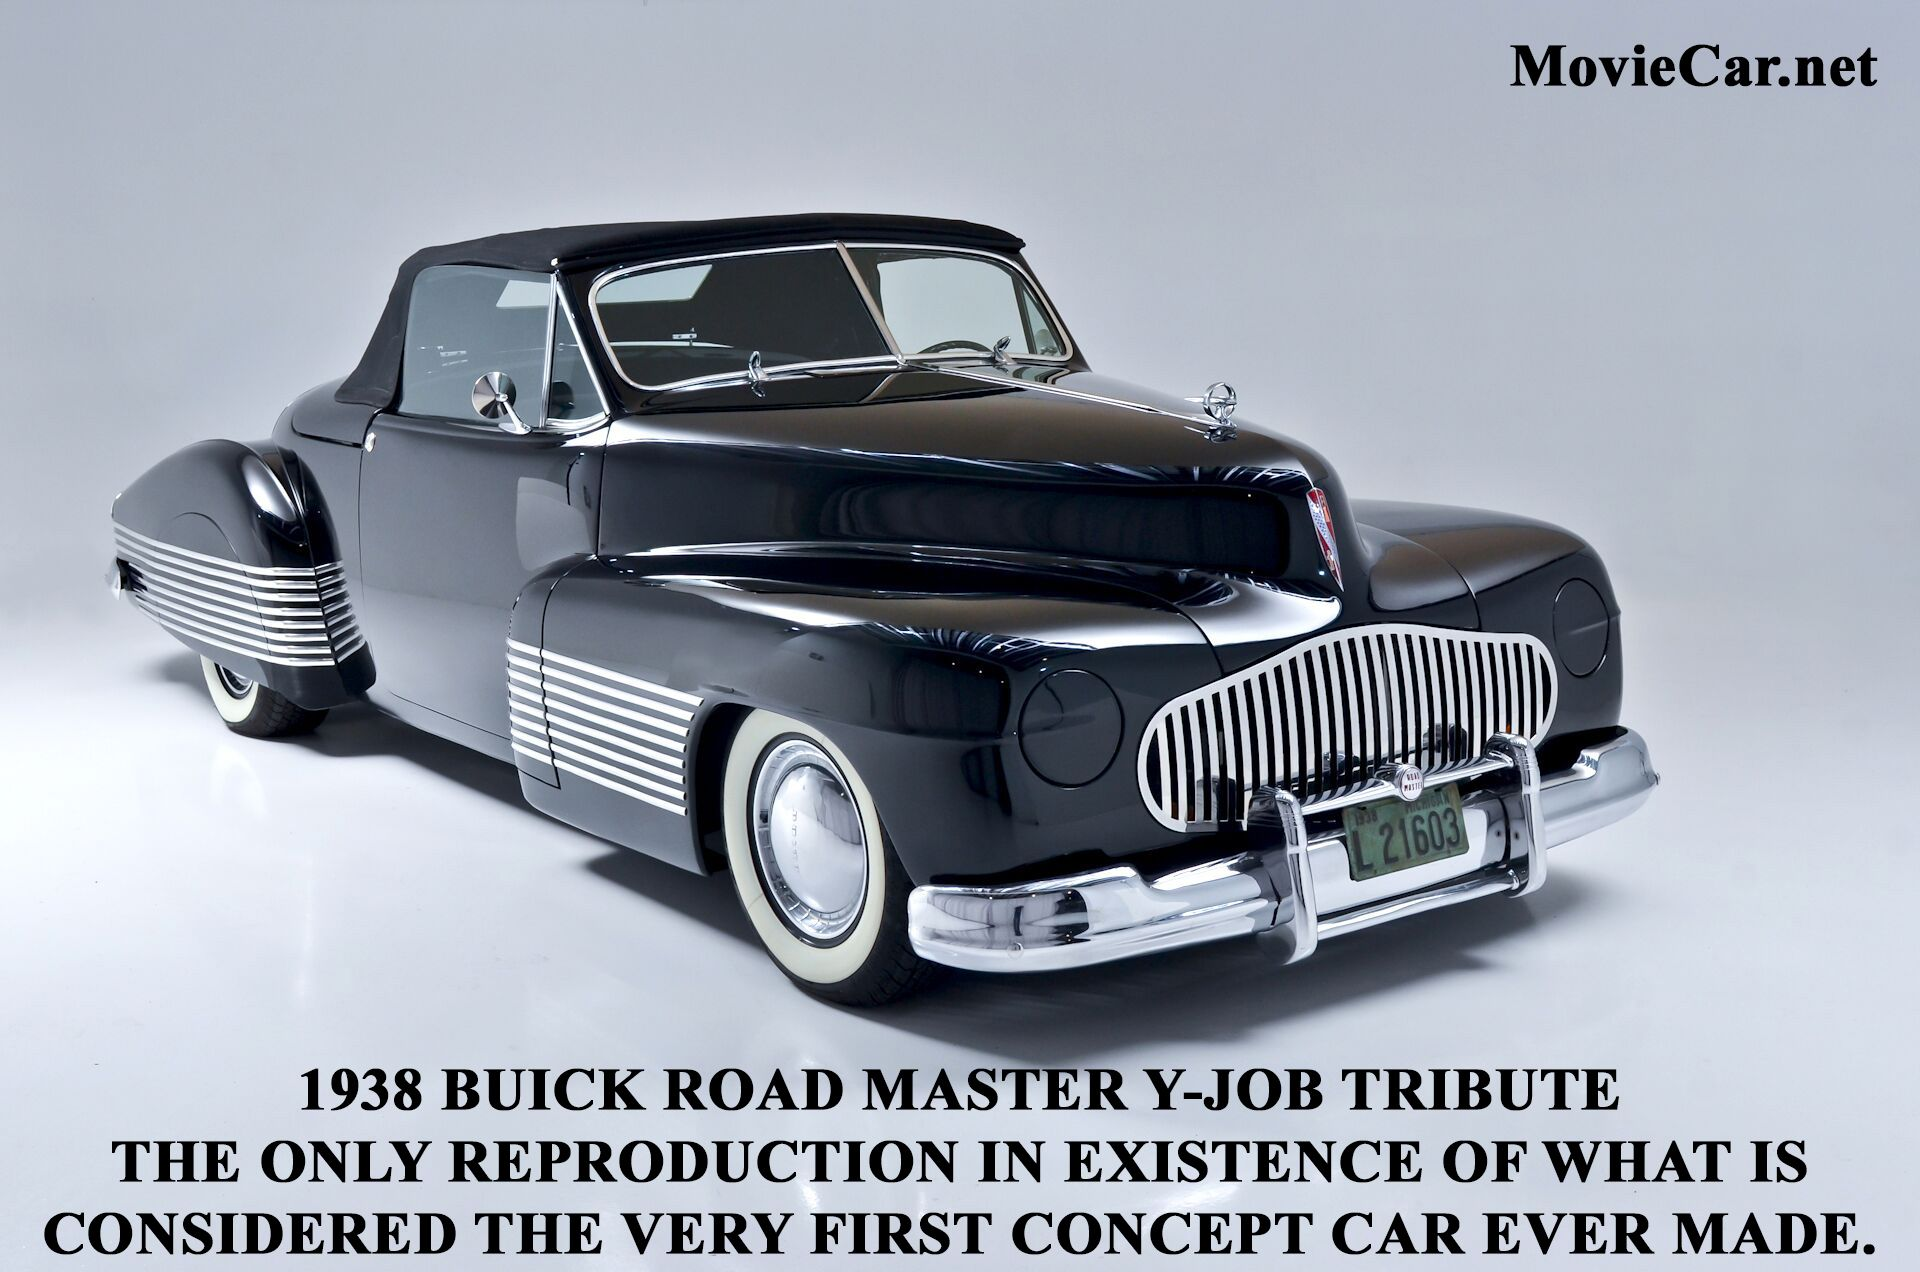 Often referred to as sculptural art - the Buick Road Master Y-Job ...